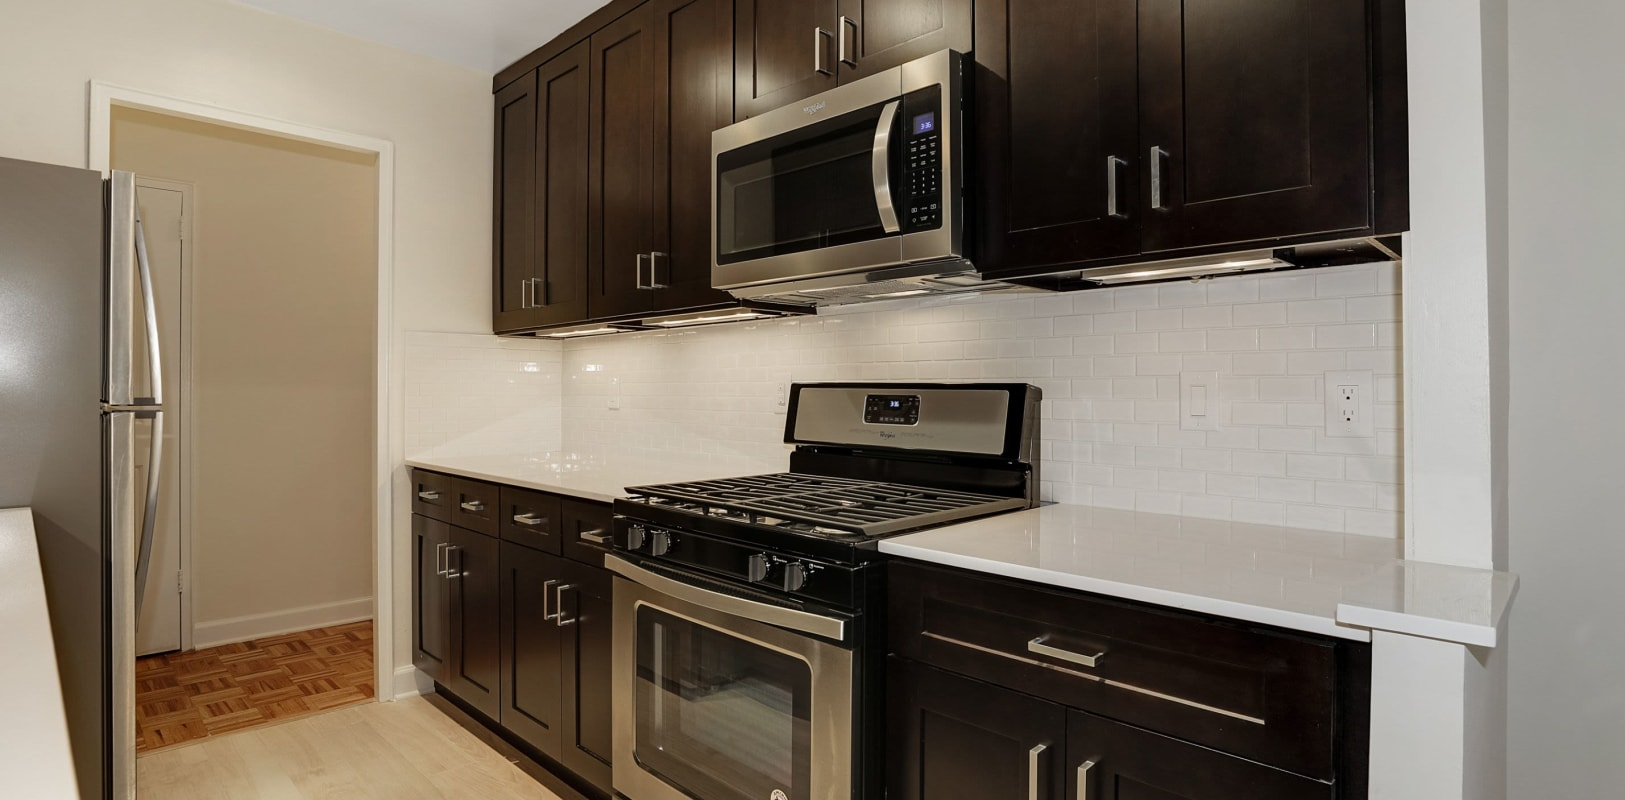 Fully equipped kitchen at Hamilton Court in Morristown, New Jersey